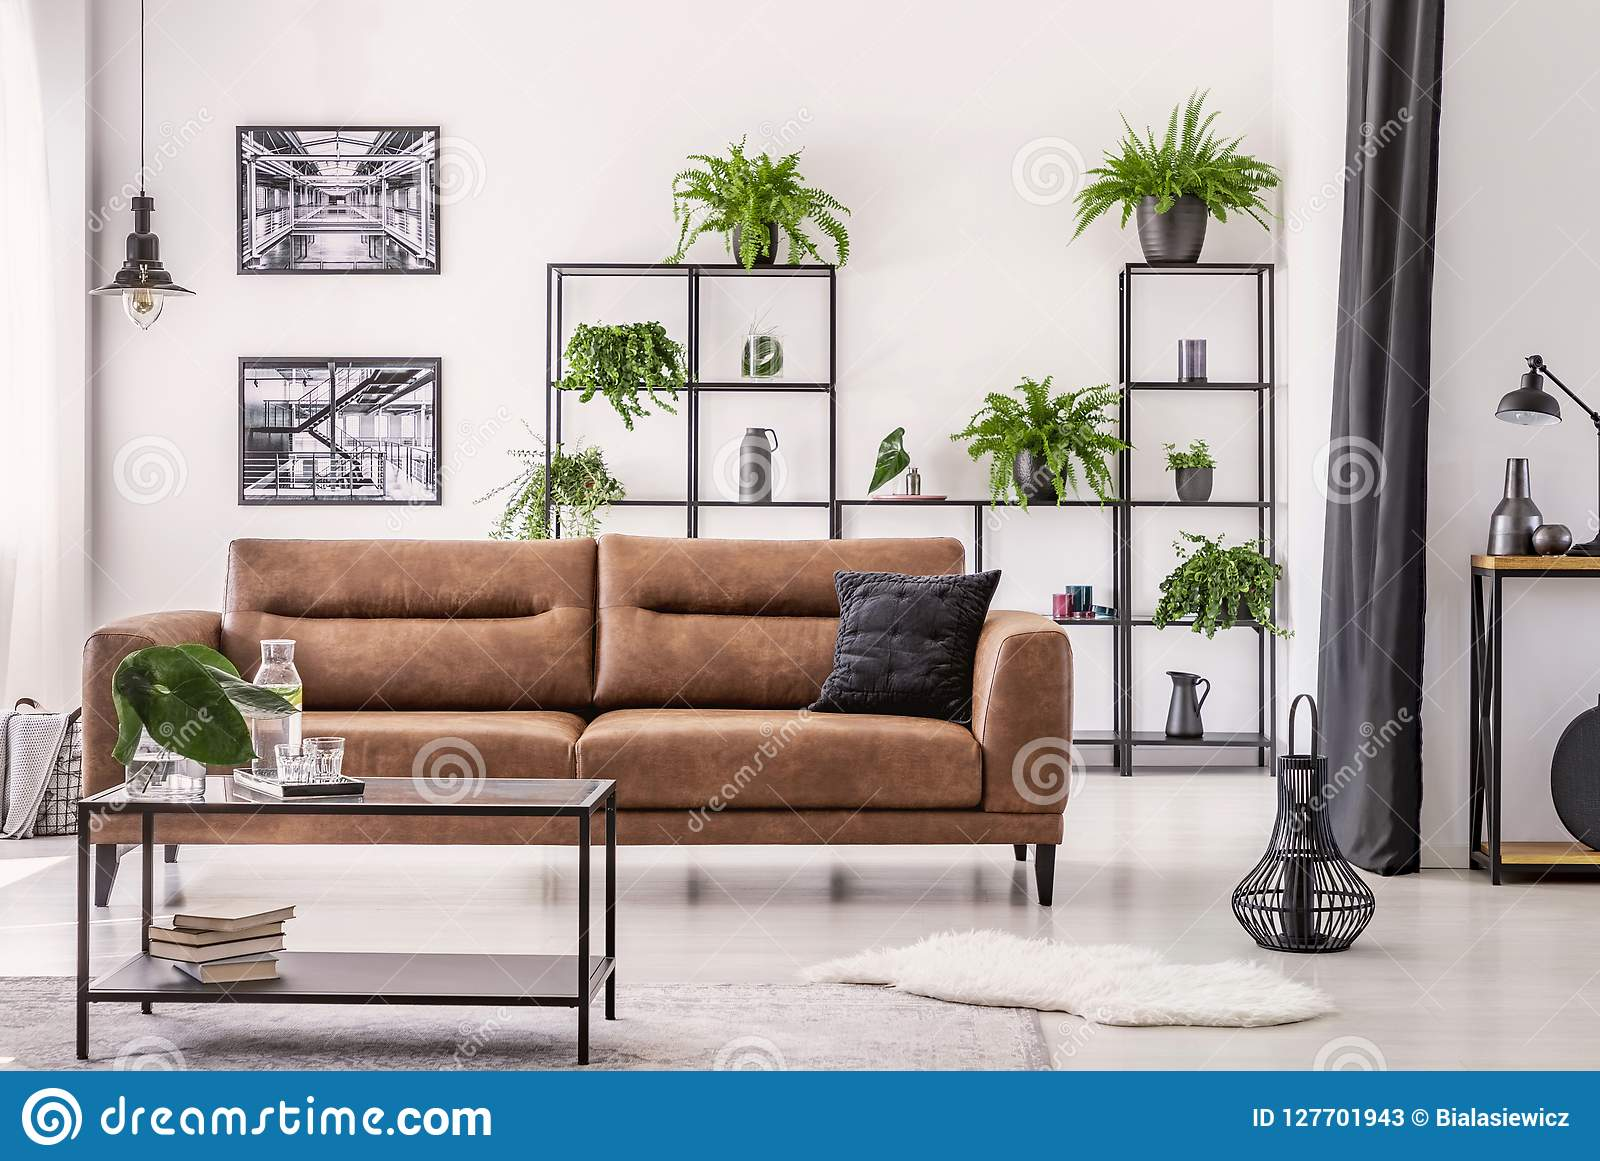 table in front of leather sofa in white apartment interior with lamp rh dreamstime com name of table in front of sofa dining table in front of sofa